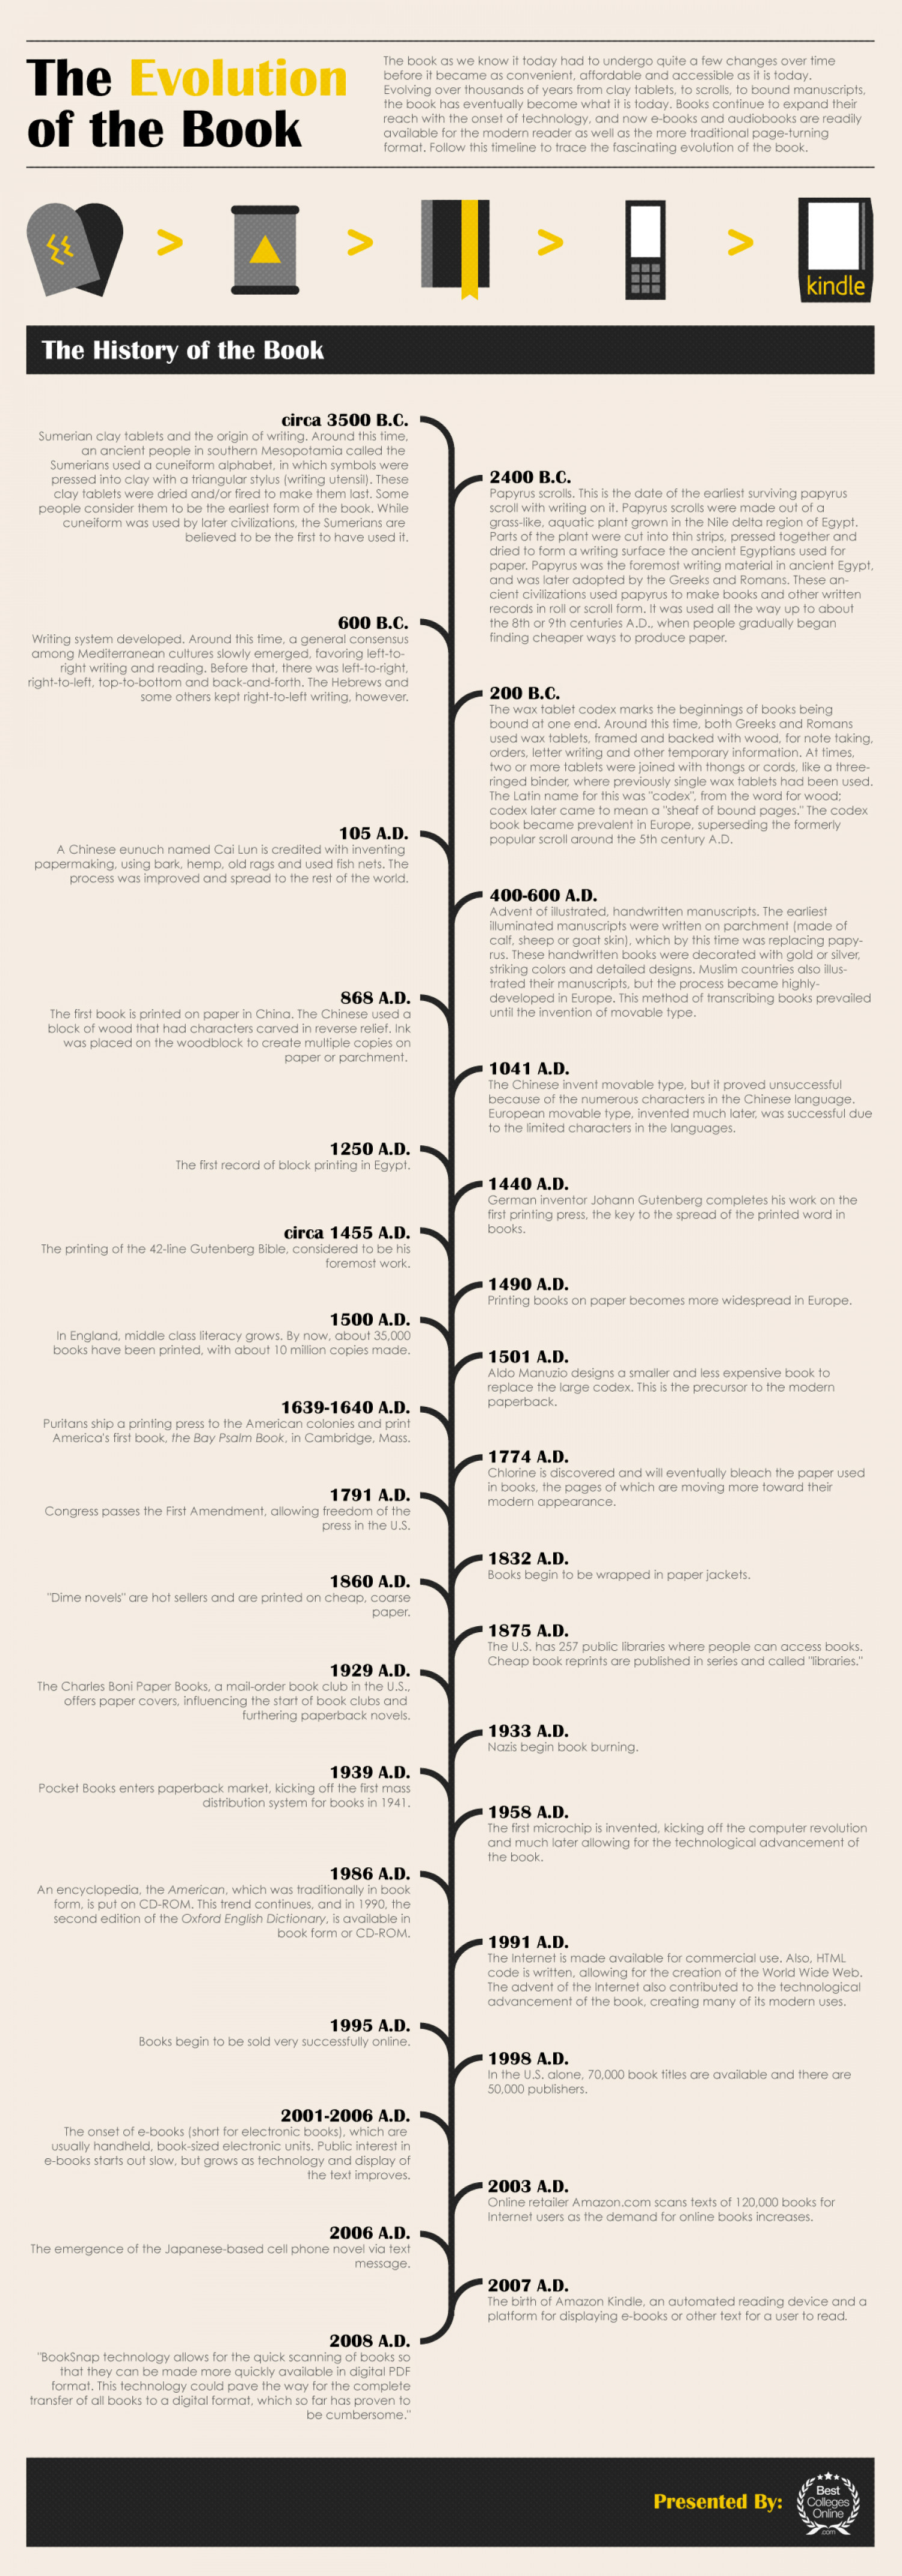 The Evolution of the Book Infographic